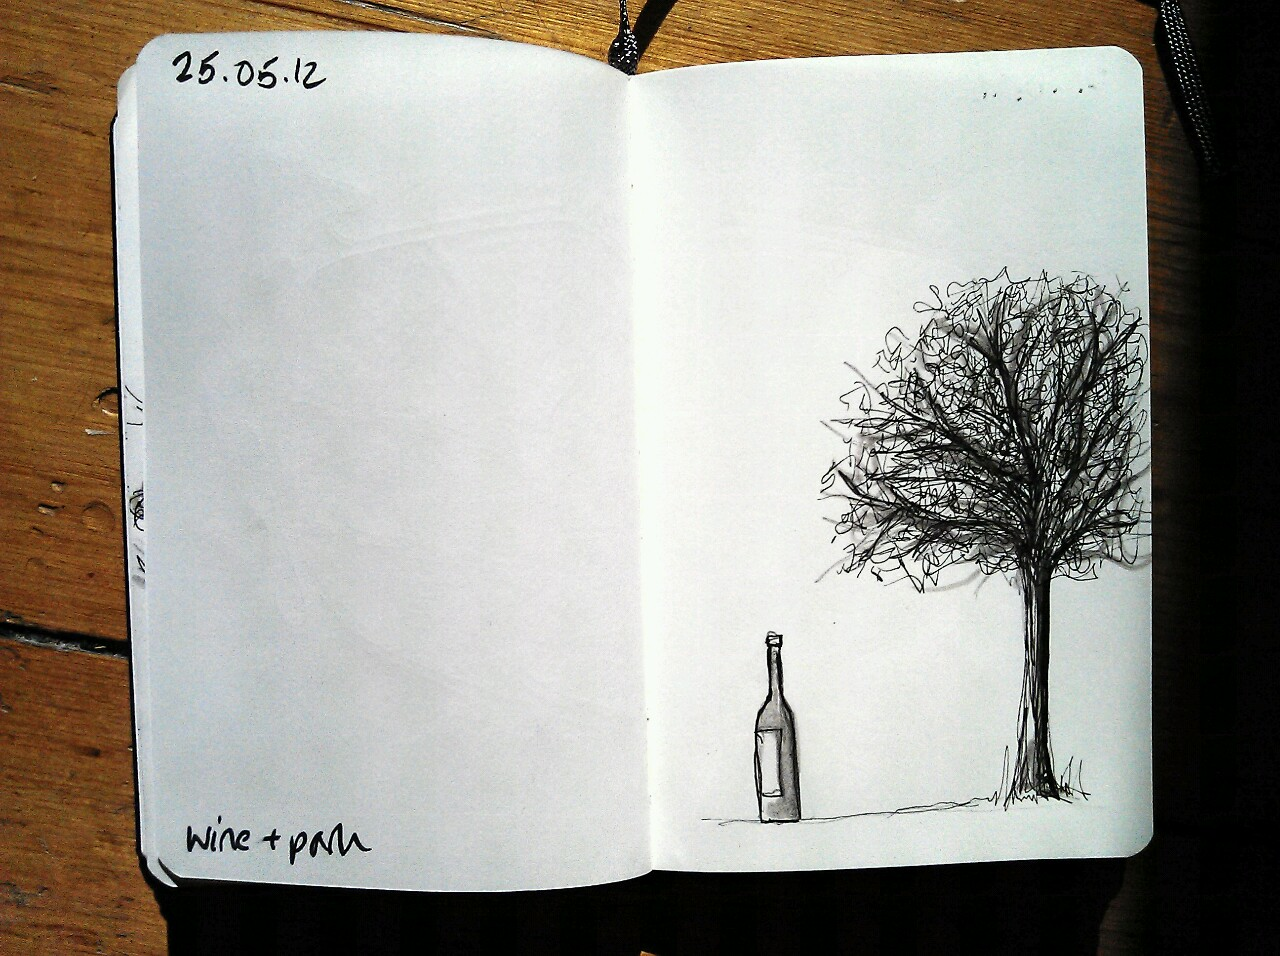 365 drawings later … day 115 … wine + park